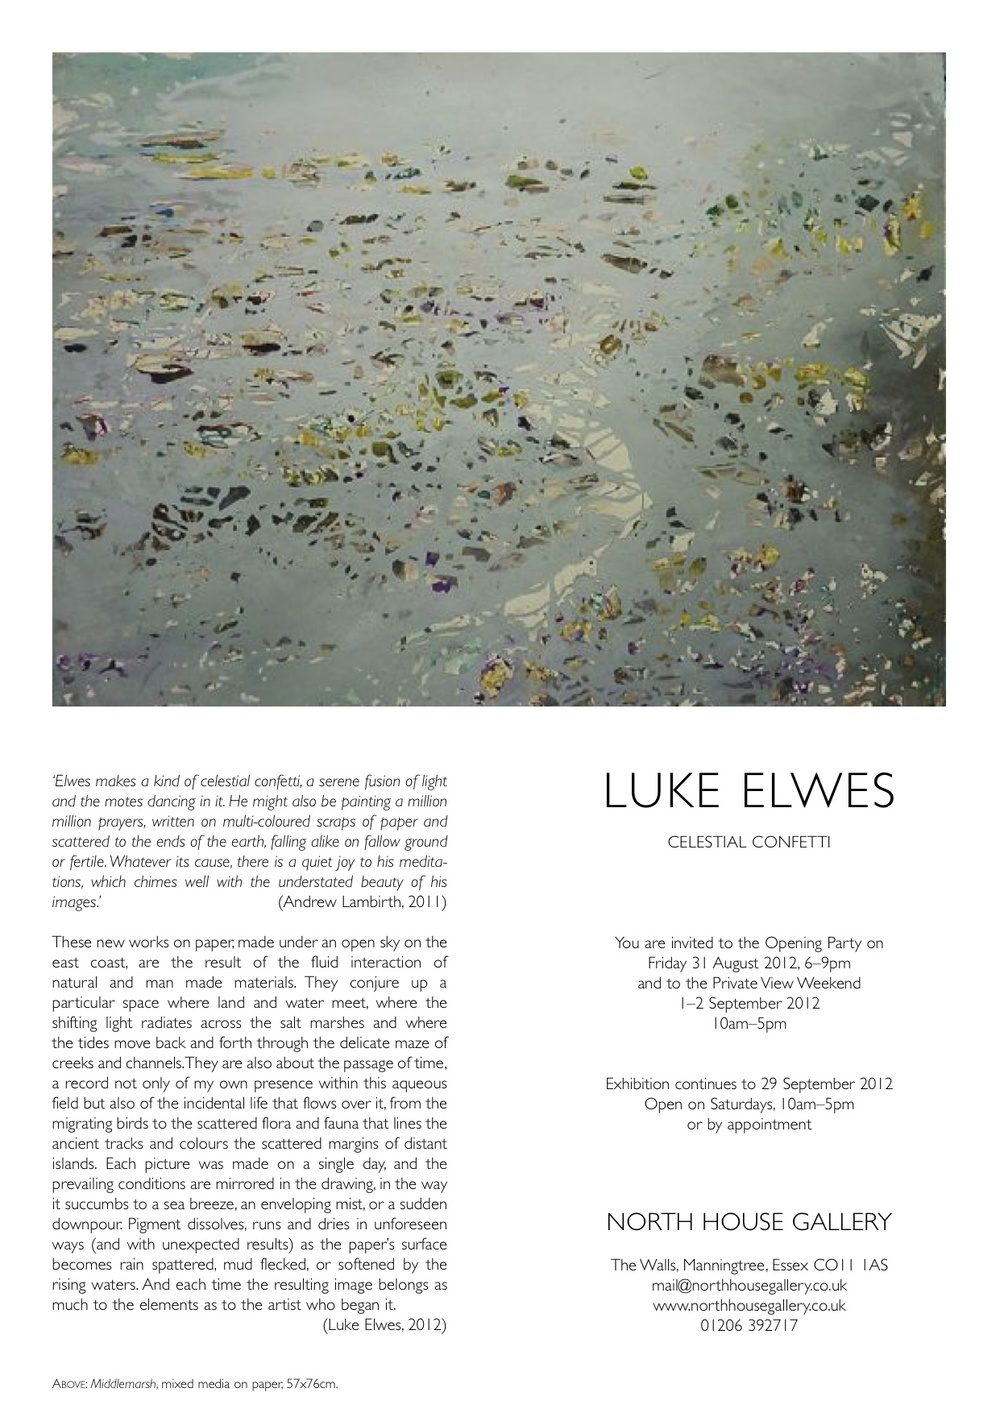 Luke Elwes e-invitation 2.jpg